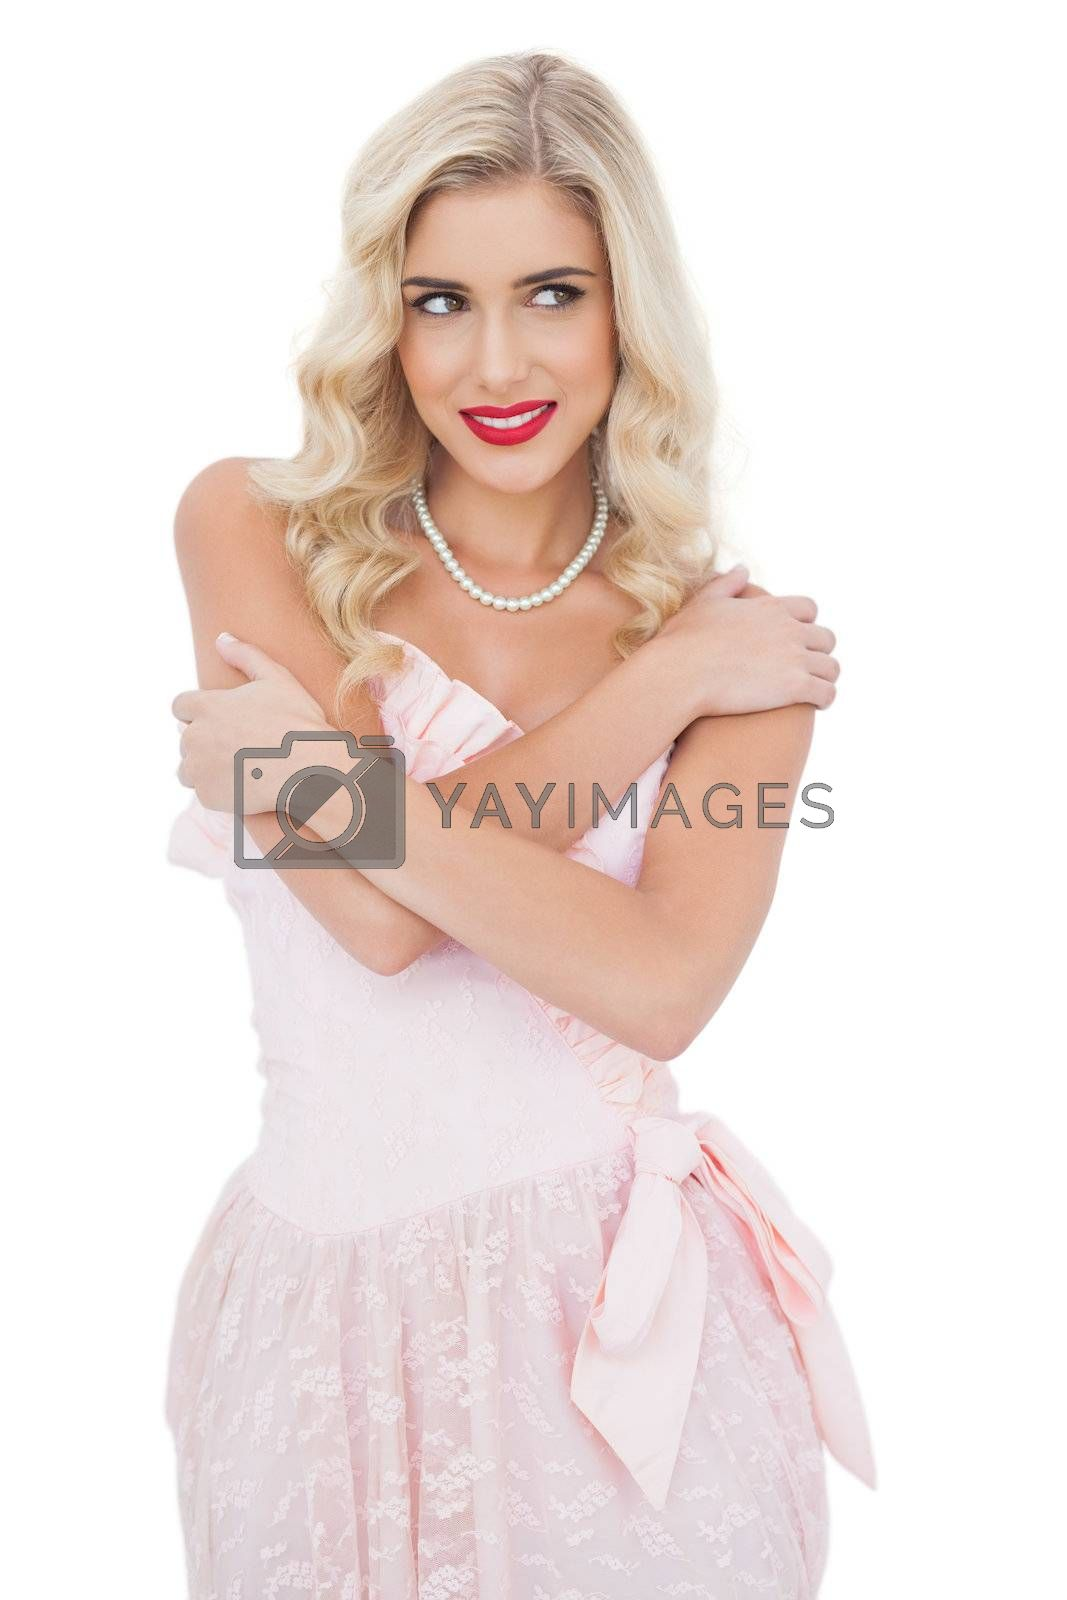 Delighted blonde model in pink dress posing holding her shoulders and looking away by Wavebreakmedia